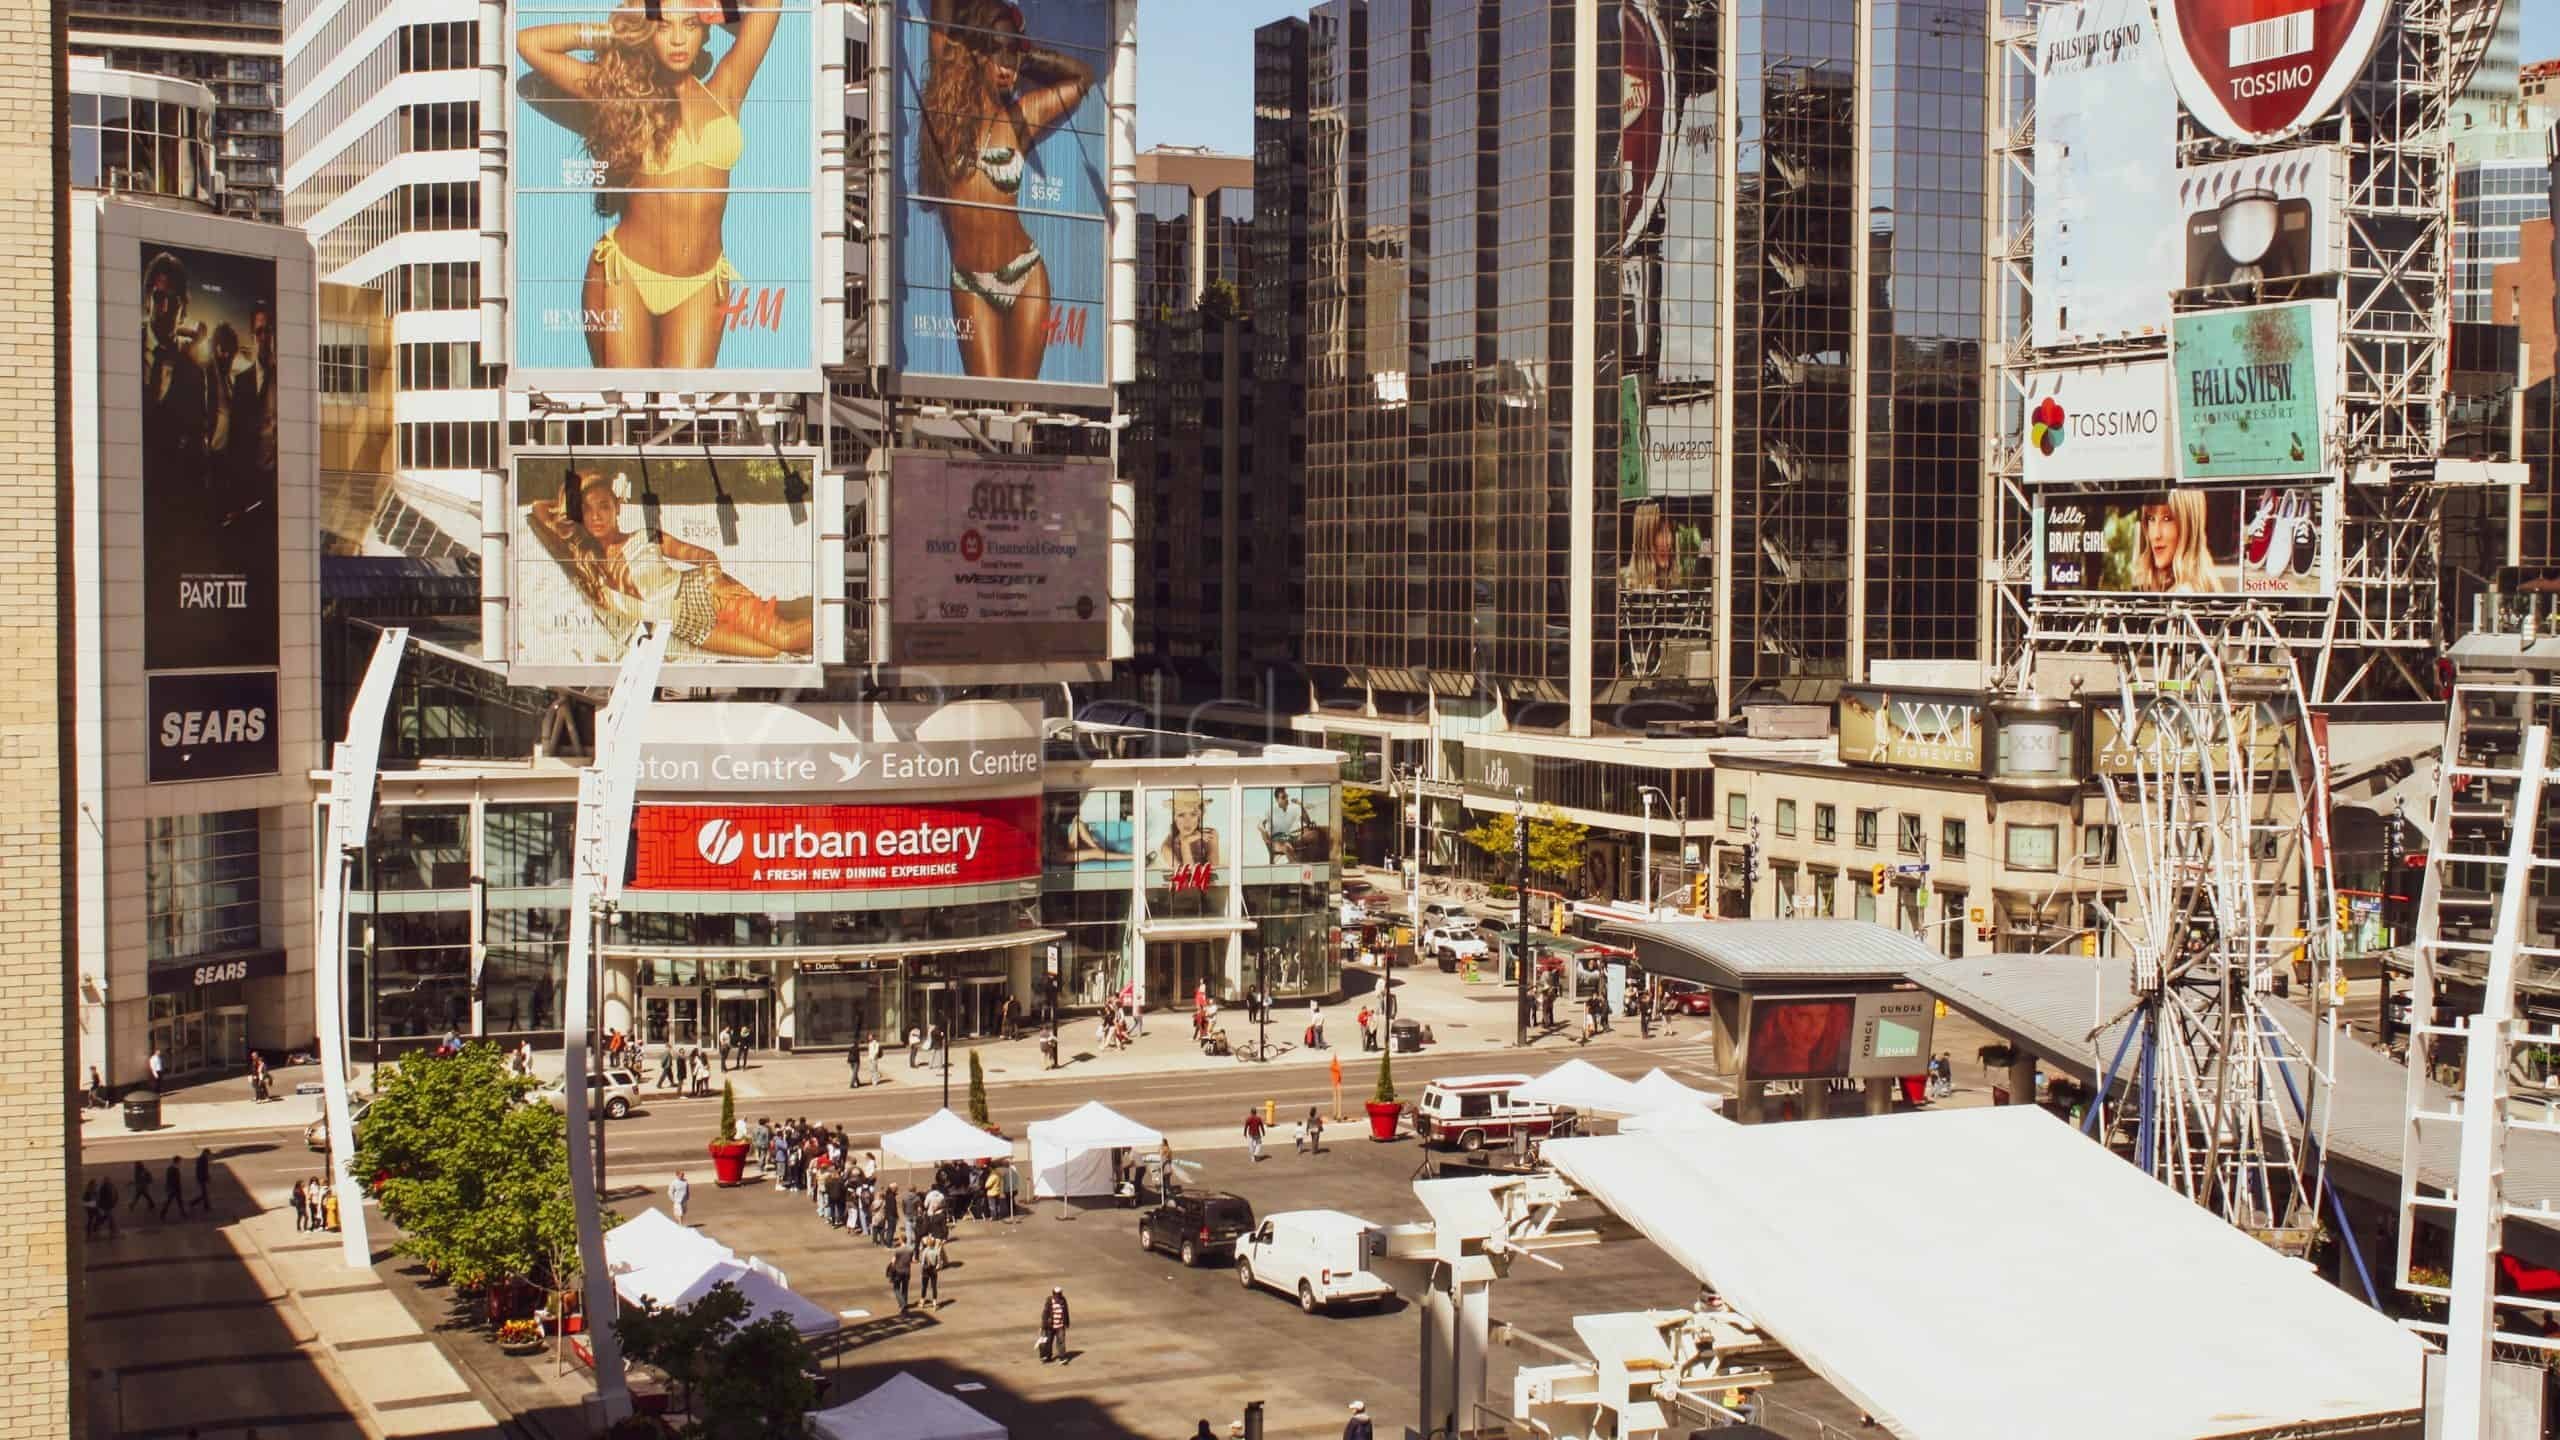 dundas square - toronto points of interest